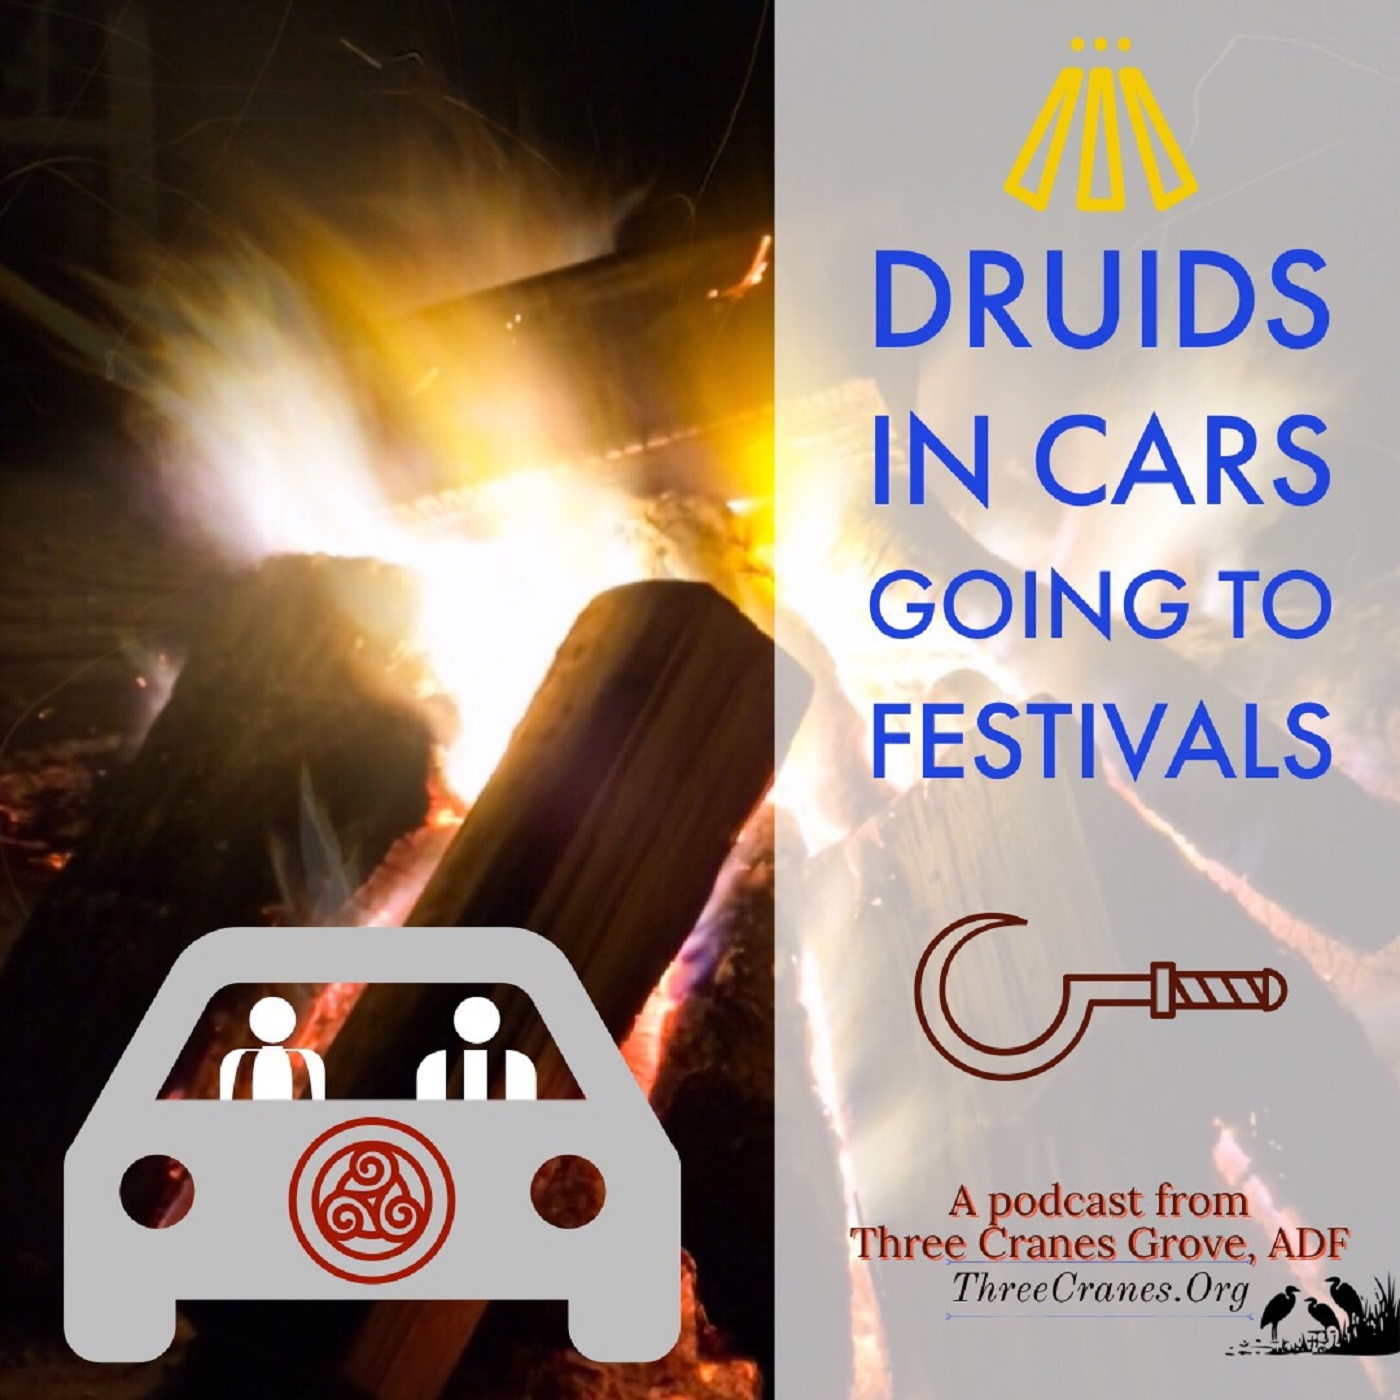 Druids In Cars, Going To Festivals